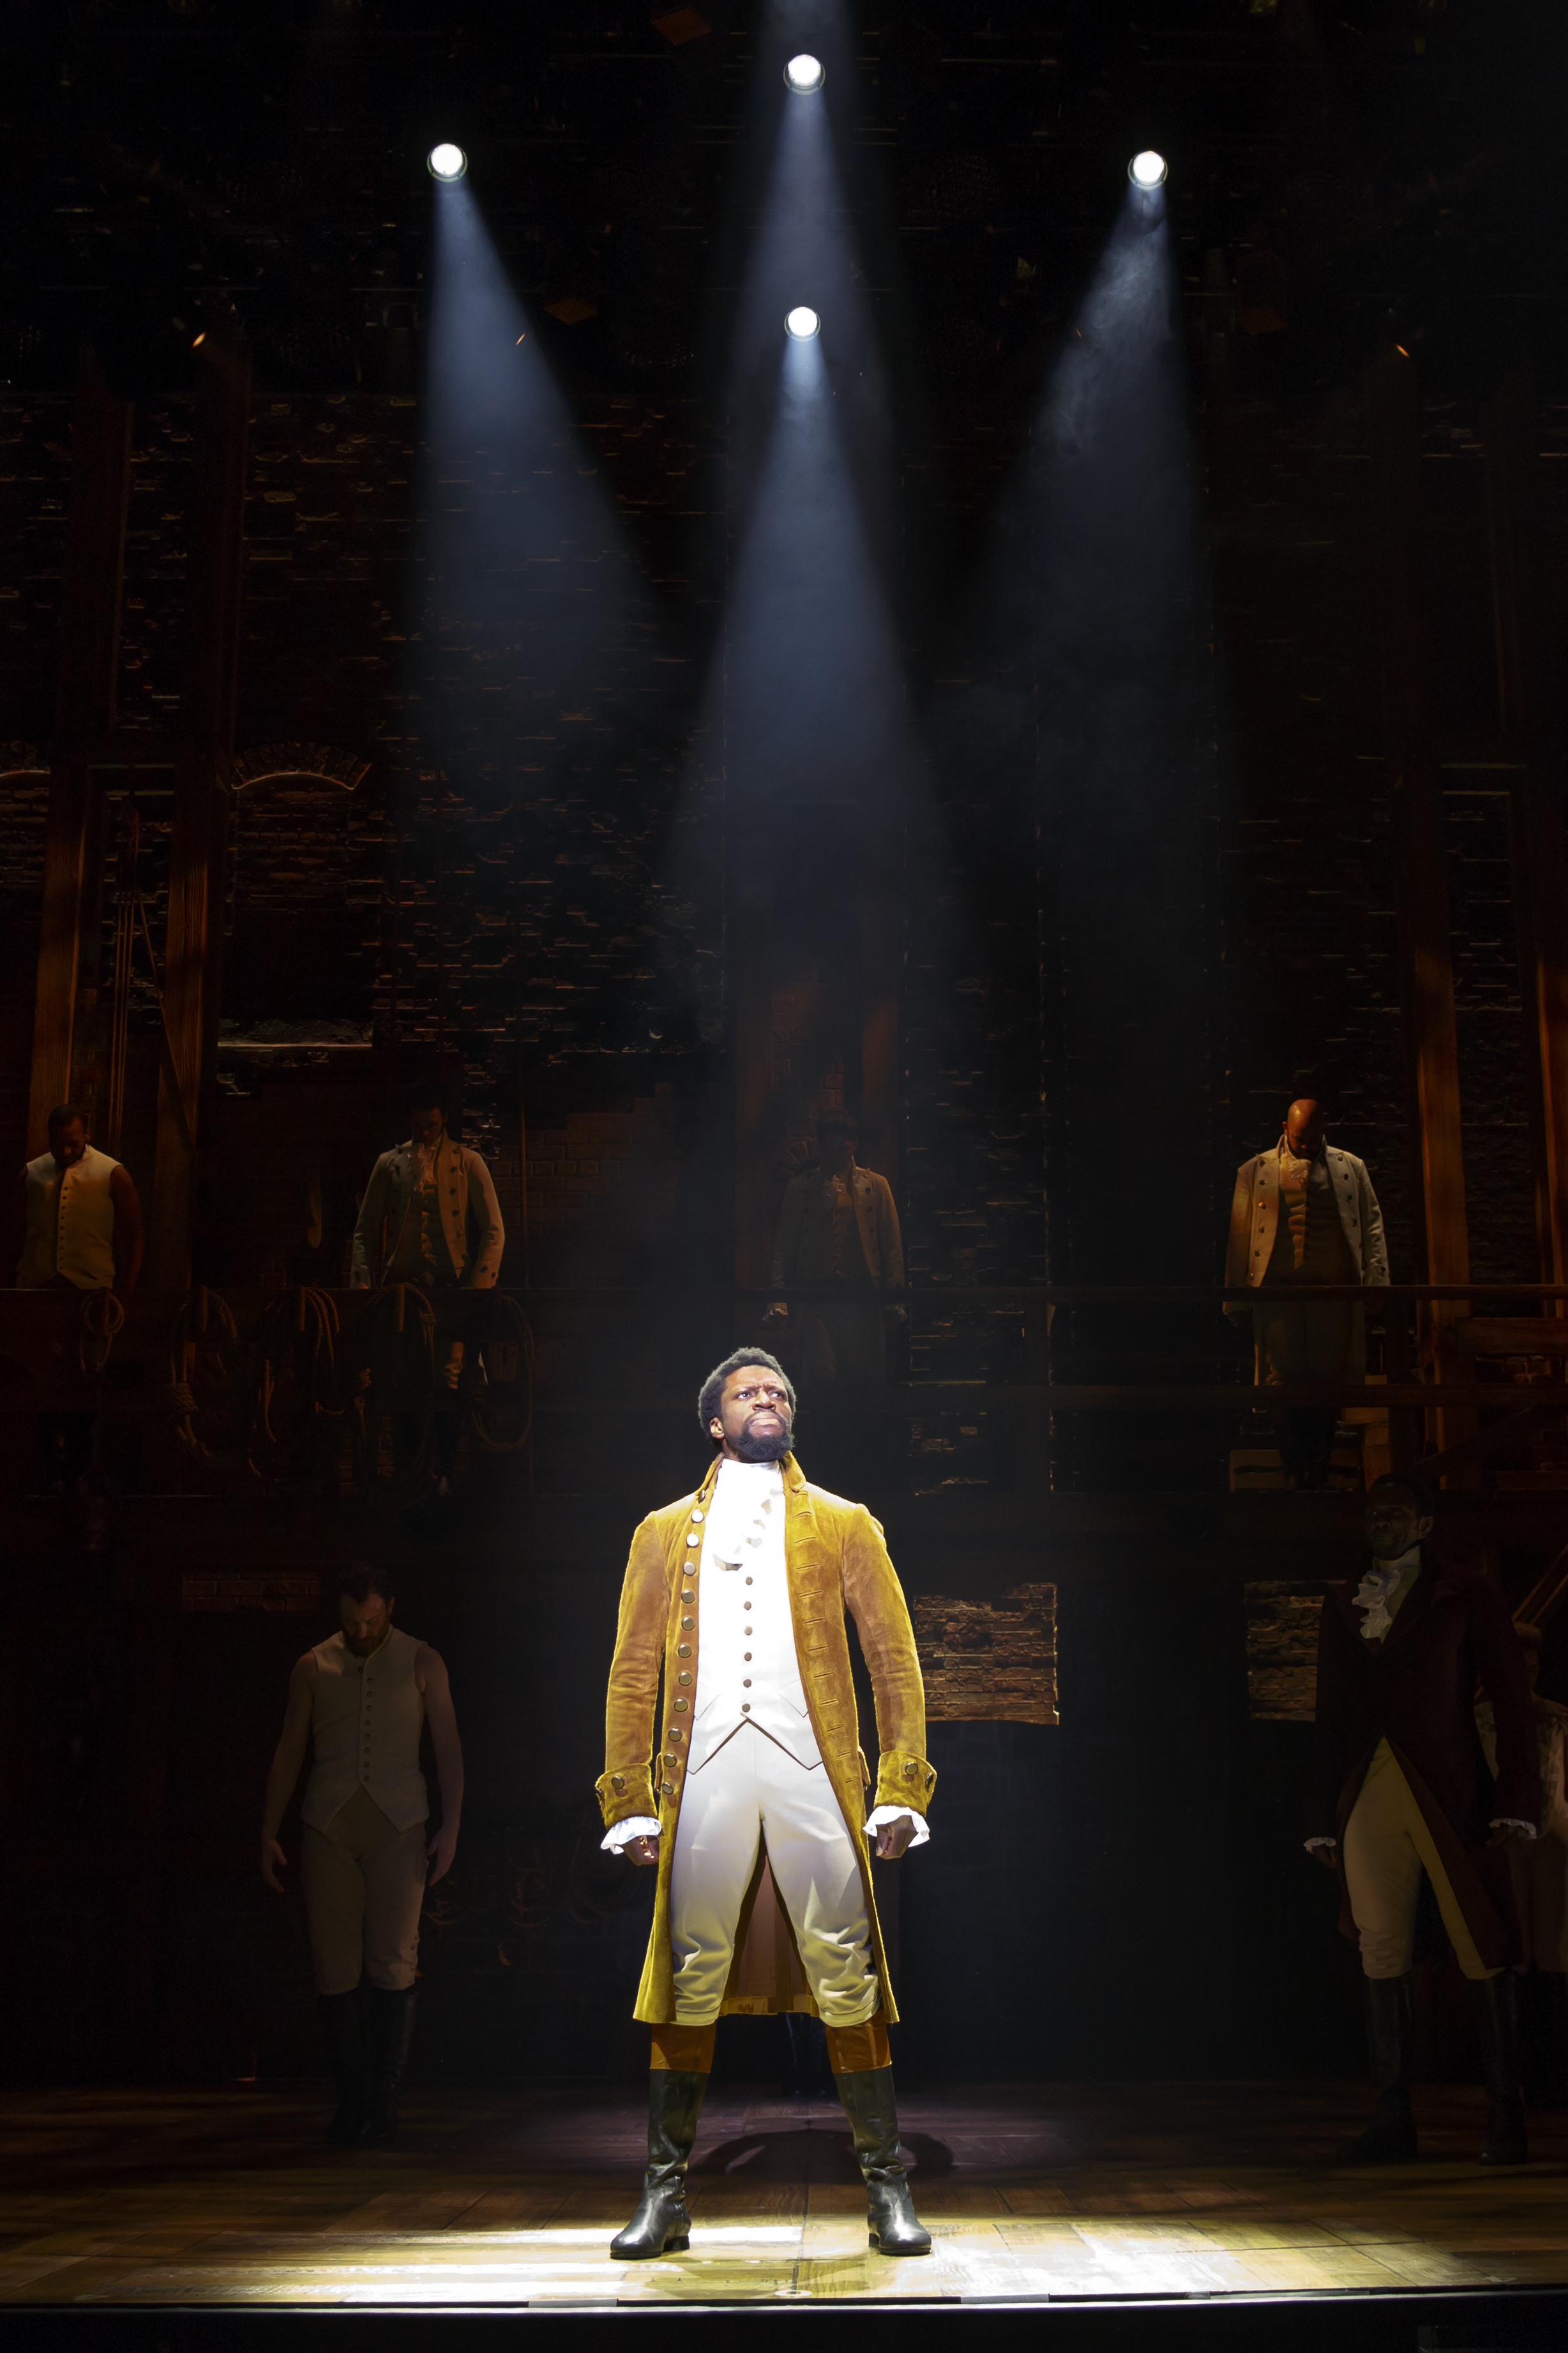 Tickets to Hamilton will be available to the public next week! More info (and some tips!) below. -